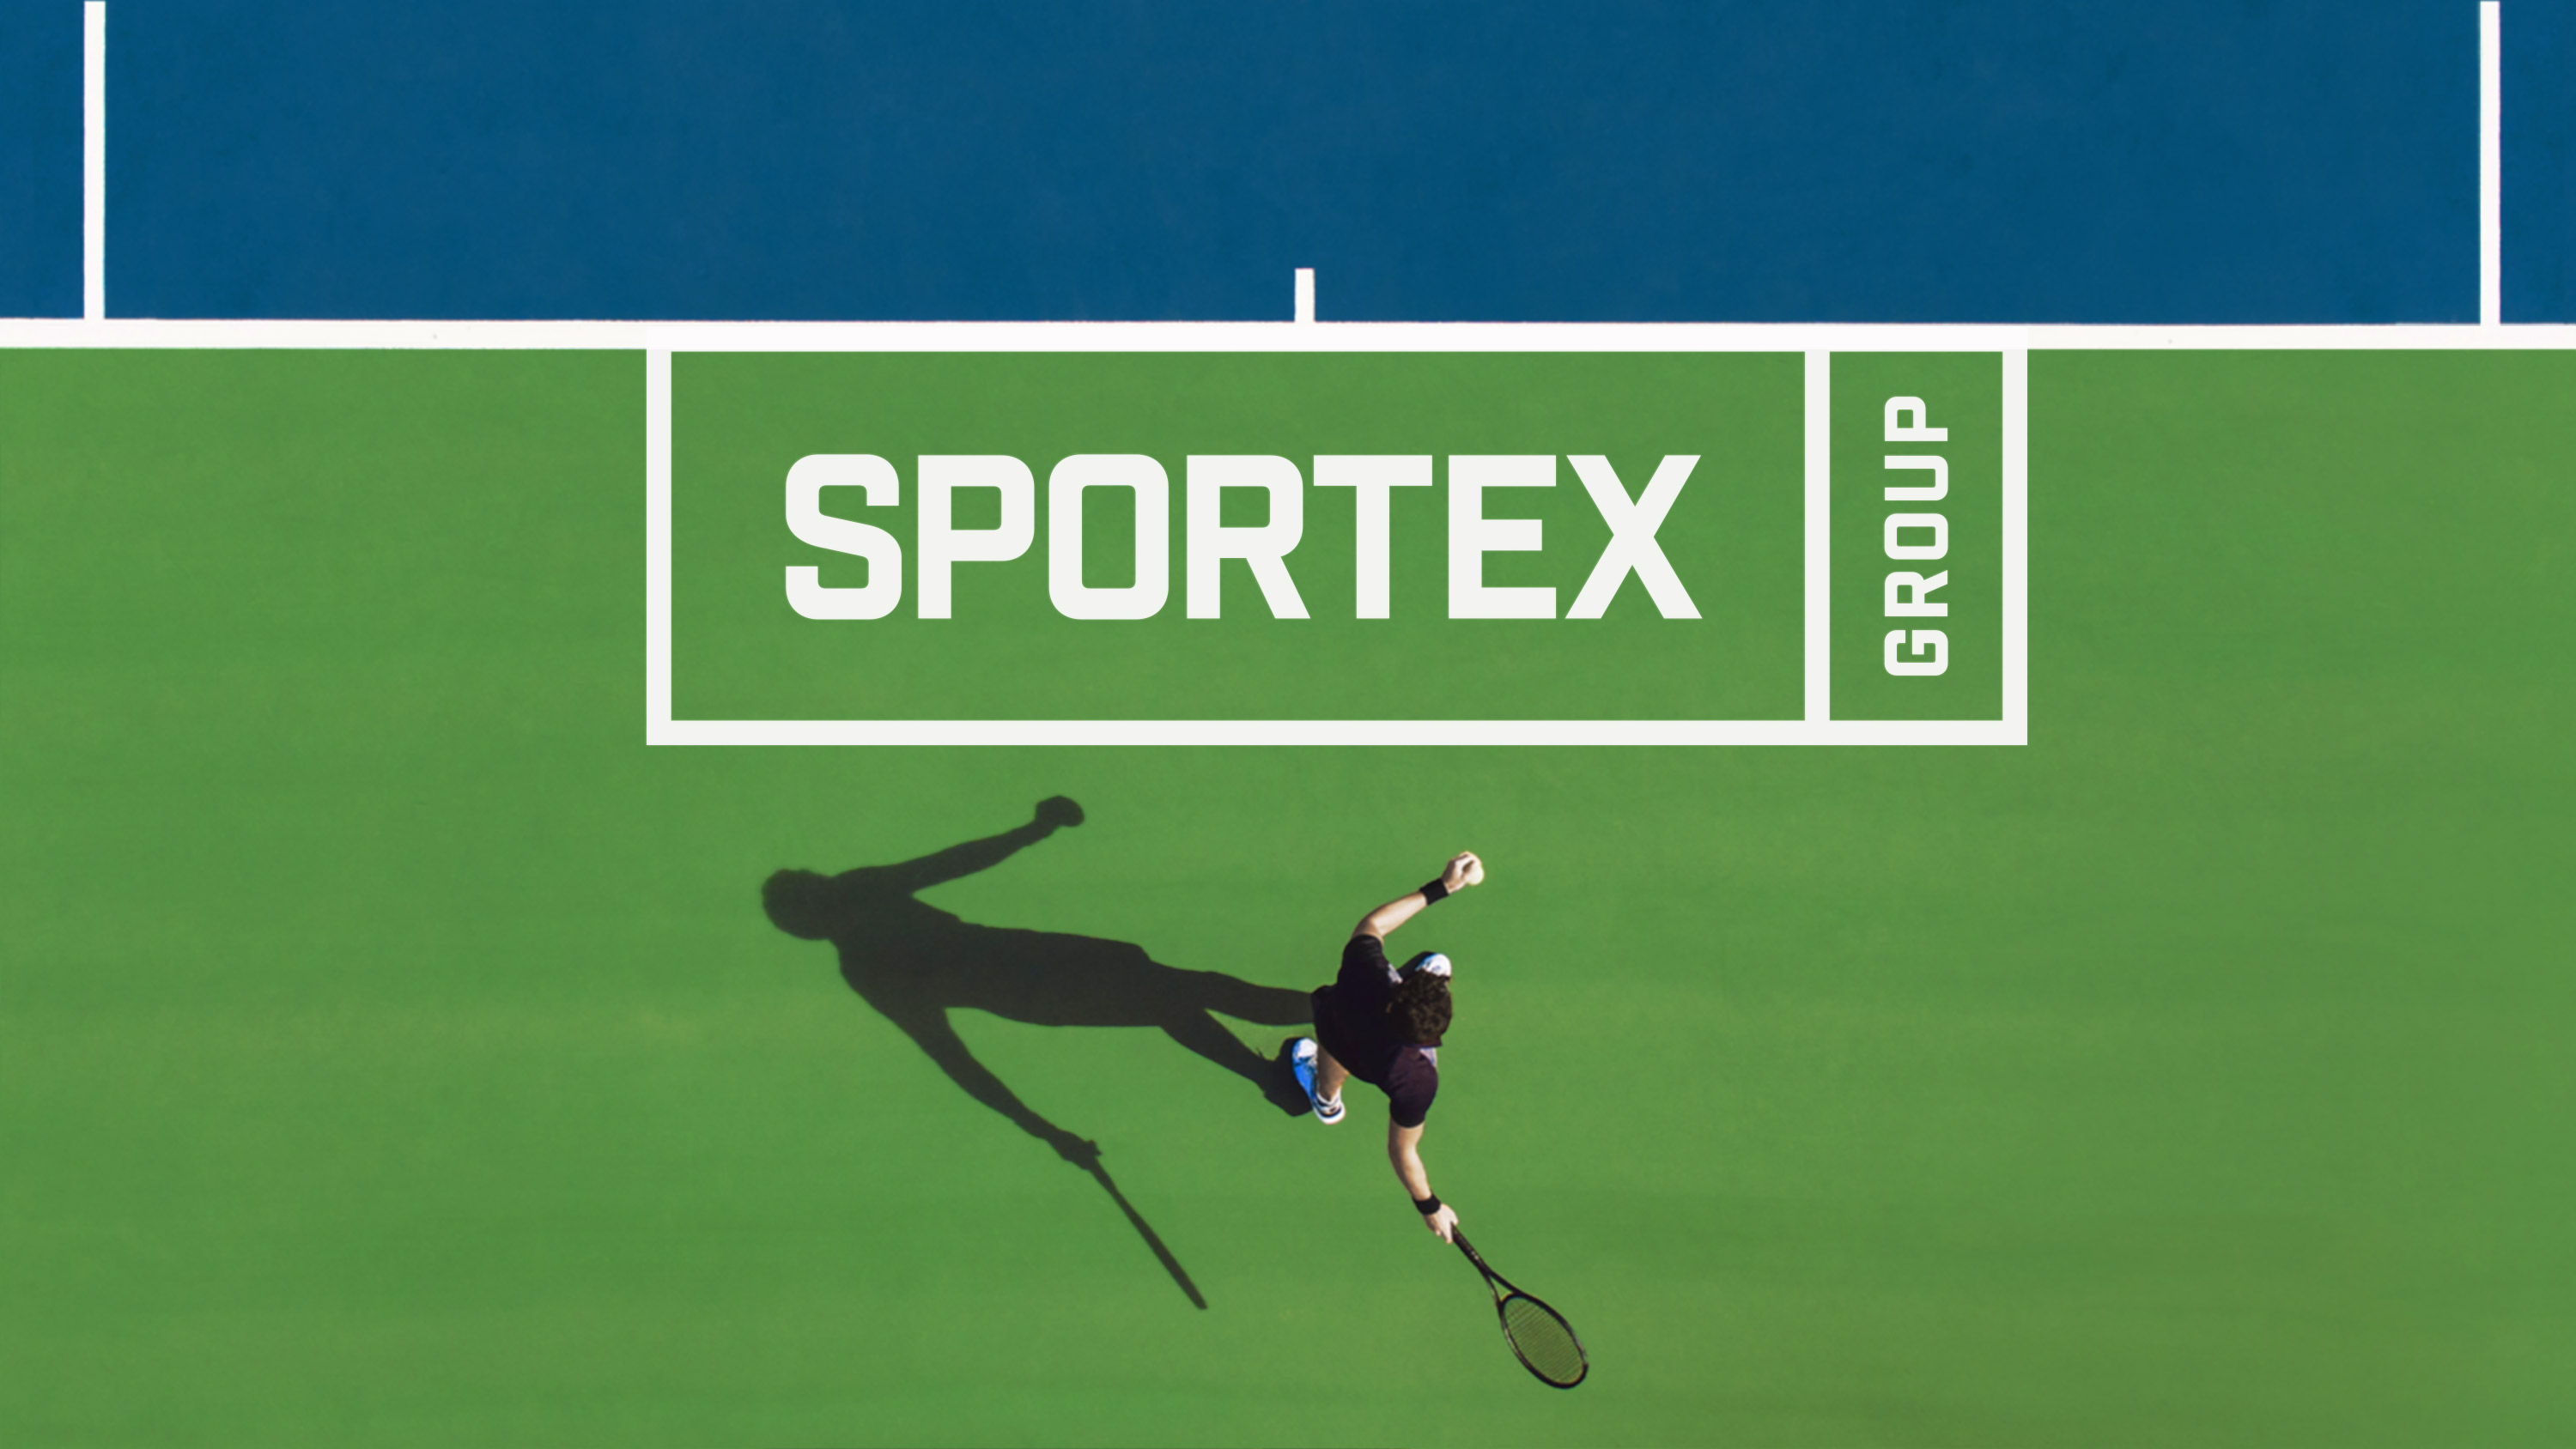 Designhouse Gives Scottish Sports Brand a Dynamic New Name and Look